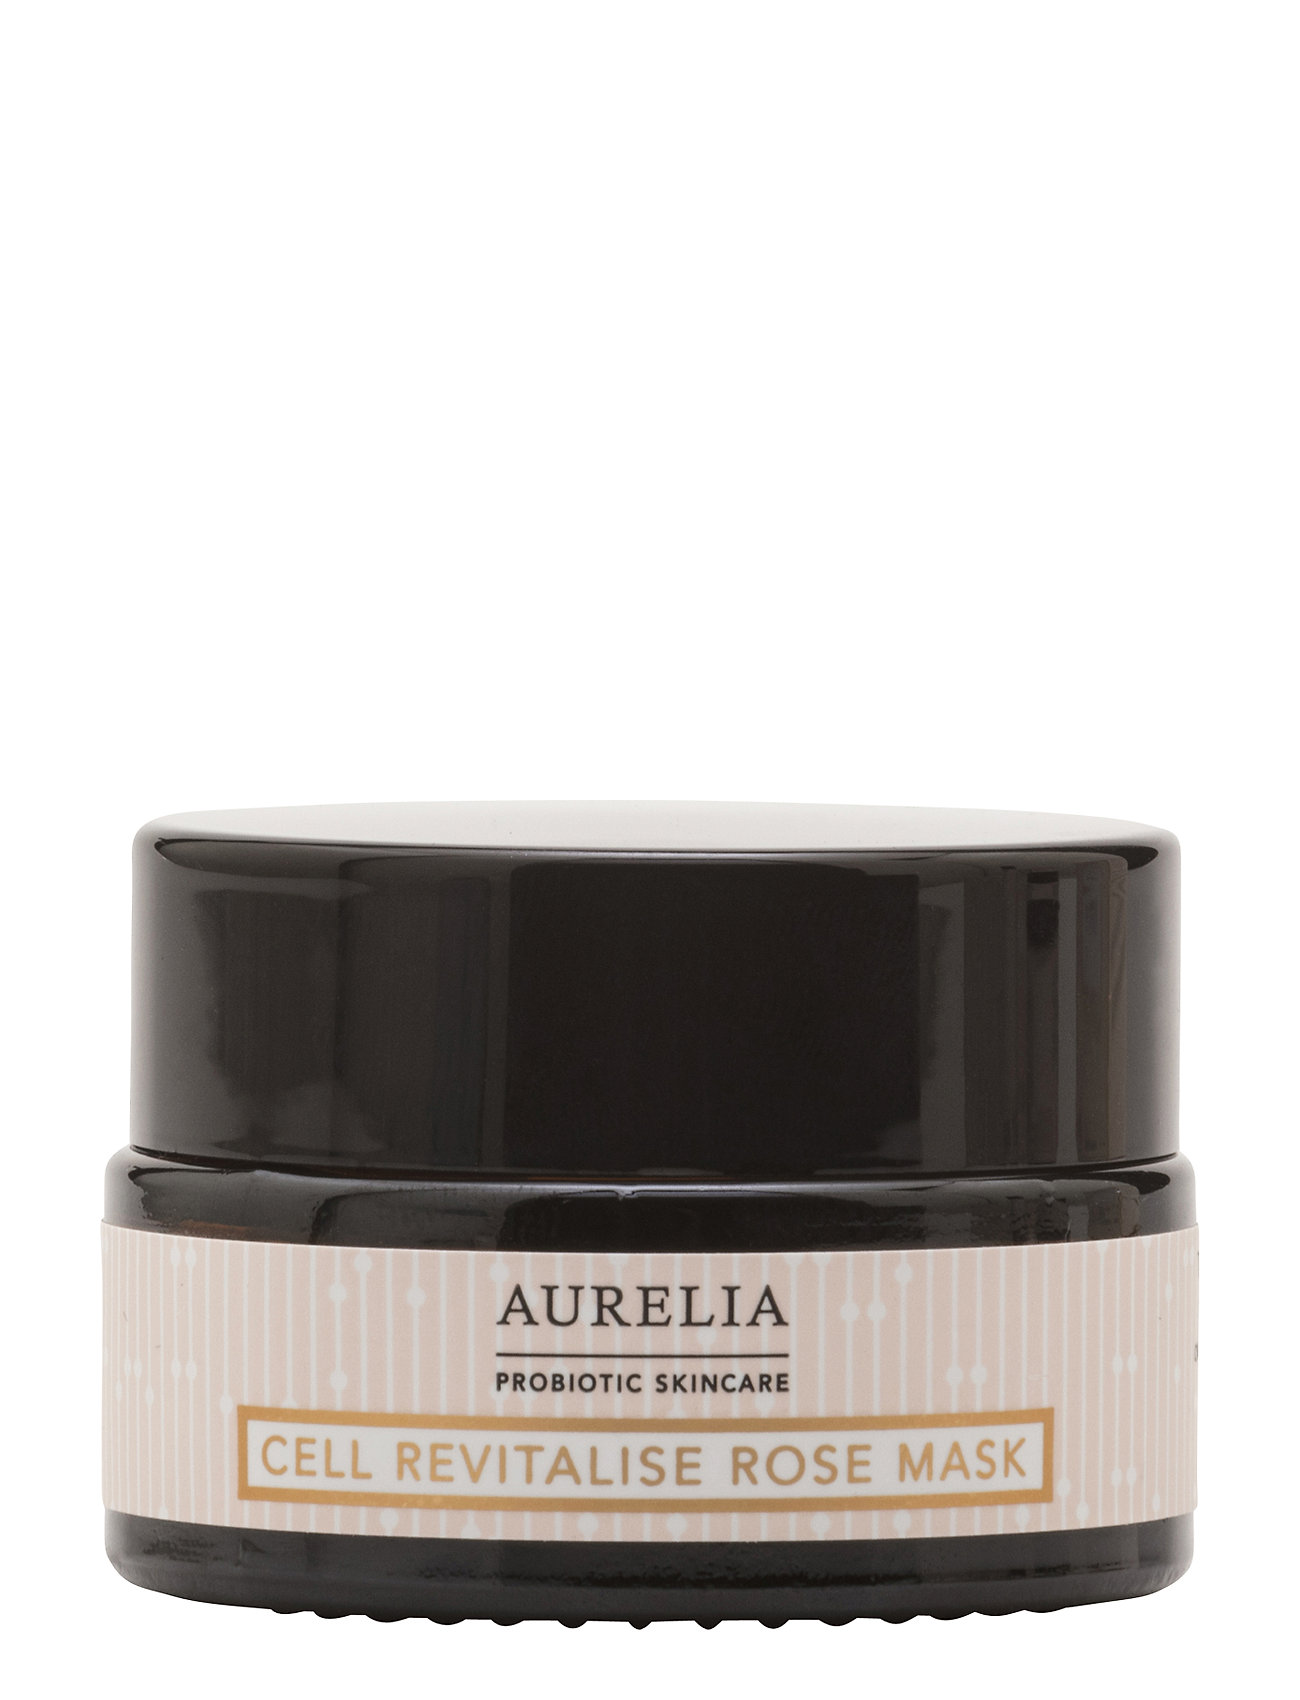 Image of Cell Revitalise Rose Mask Ansigtsmaske Makeup Nude Aurelia Probiotic Skincare (3158643349)